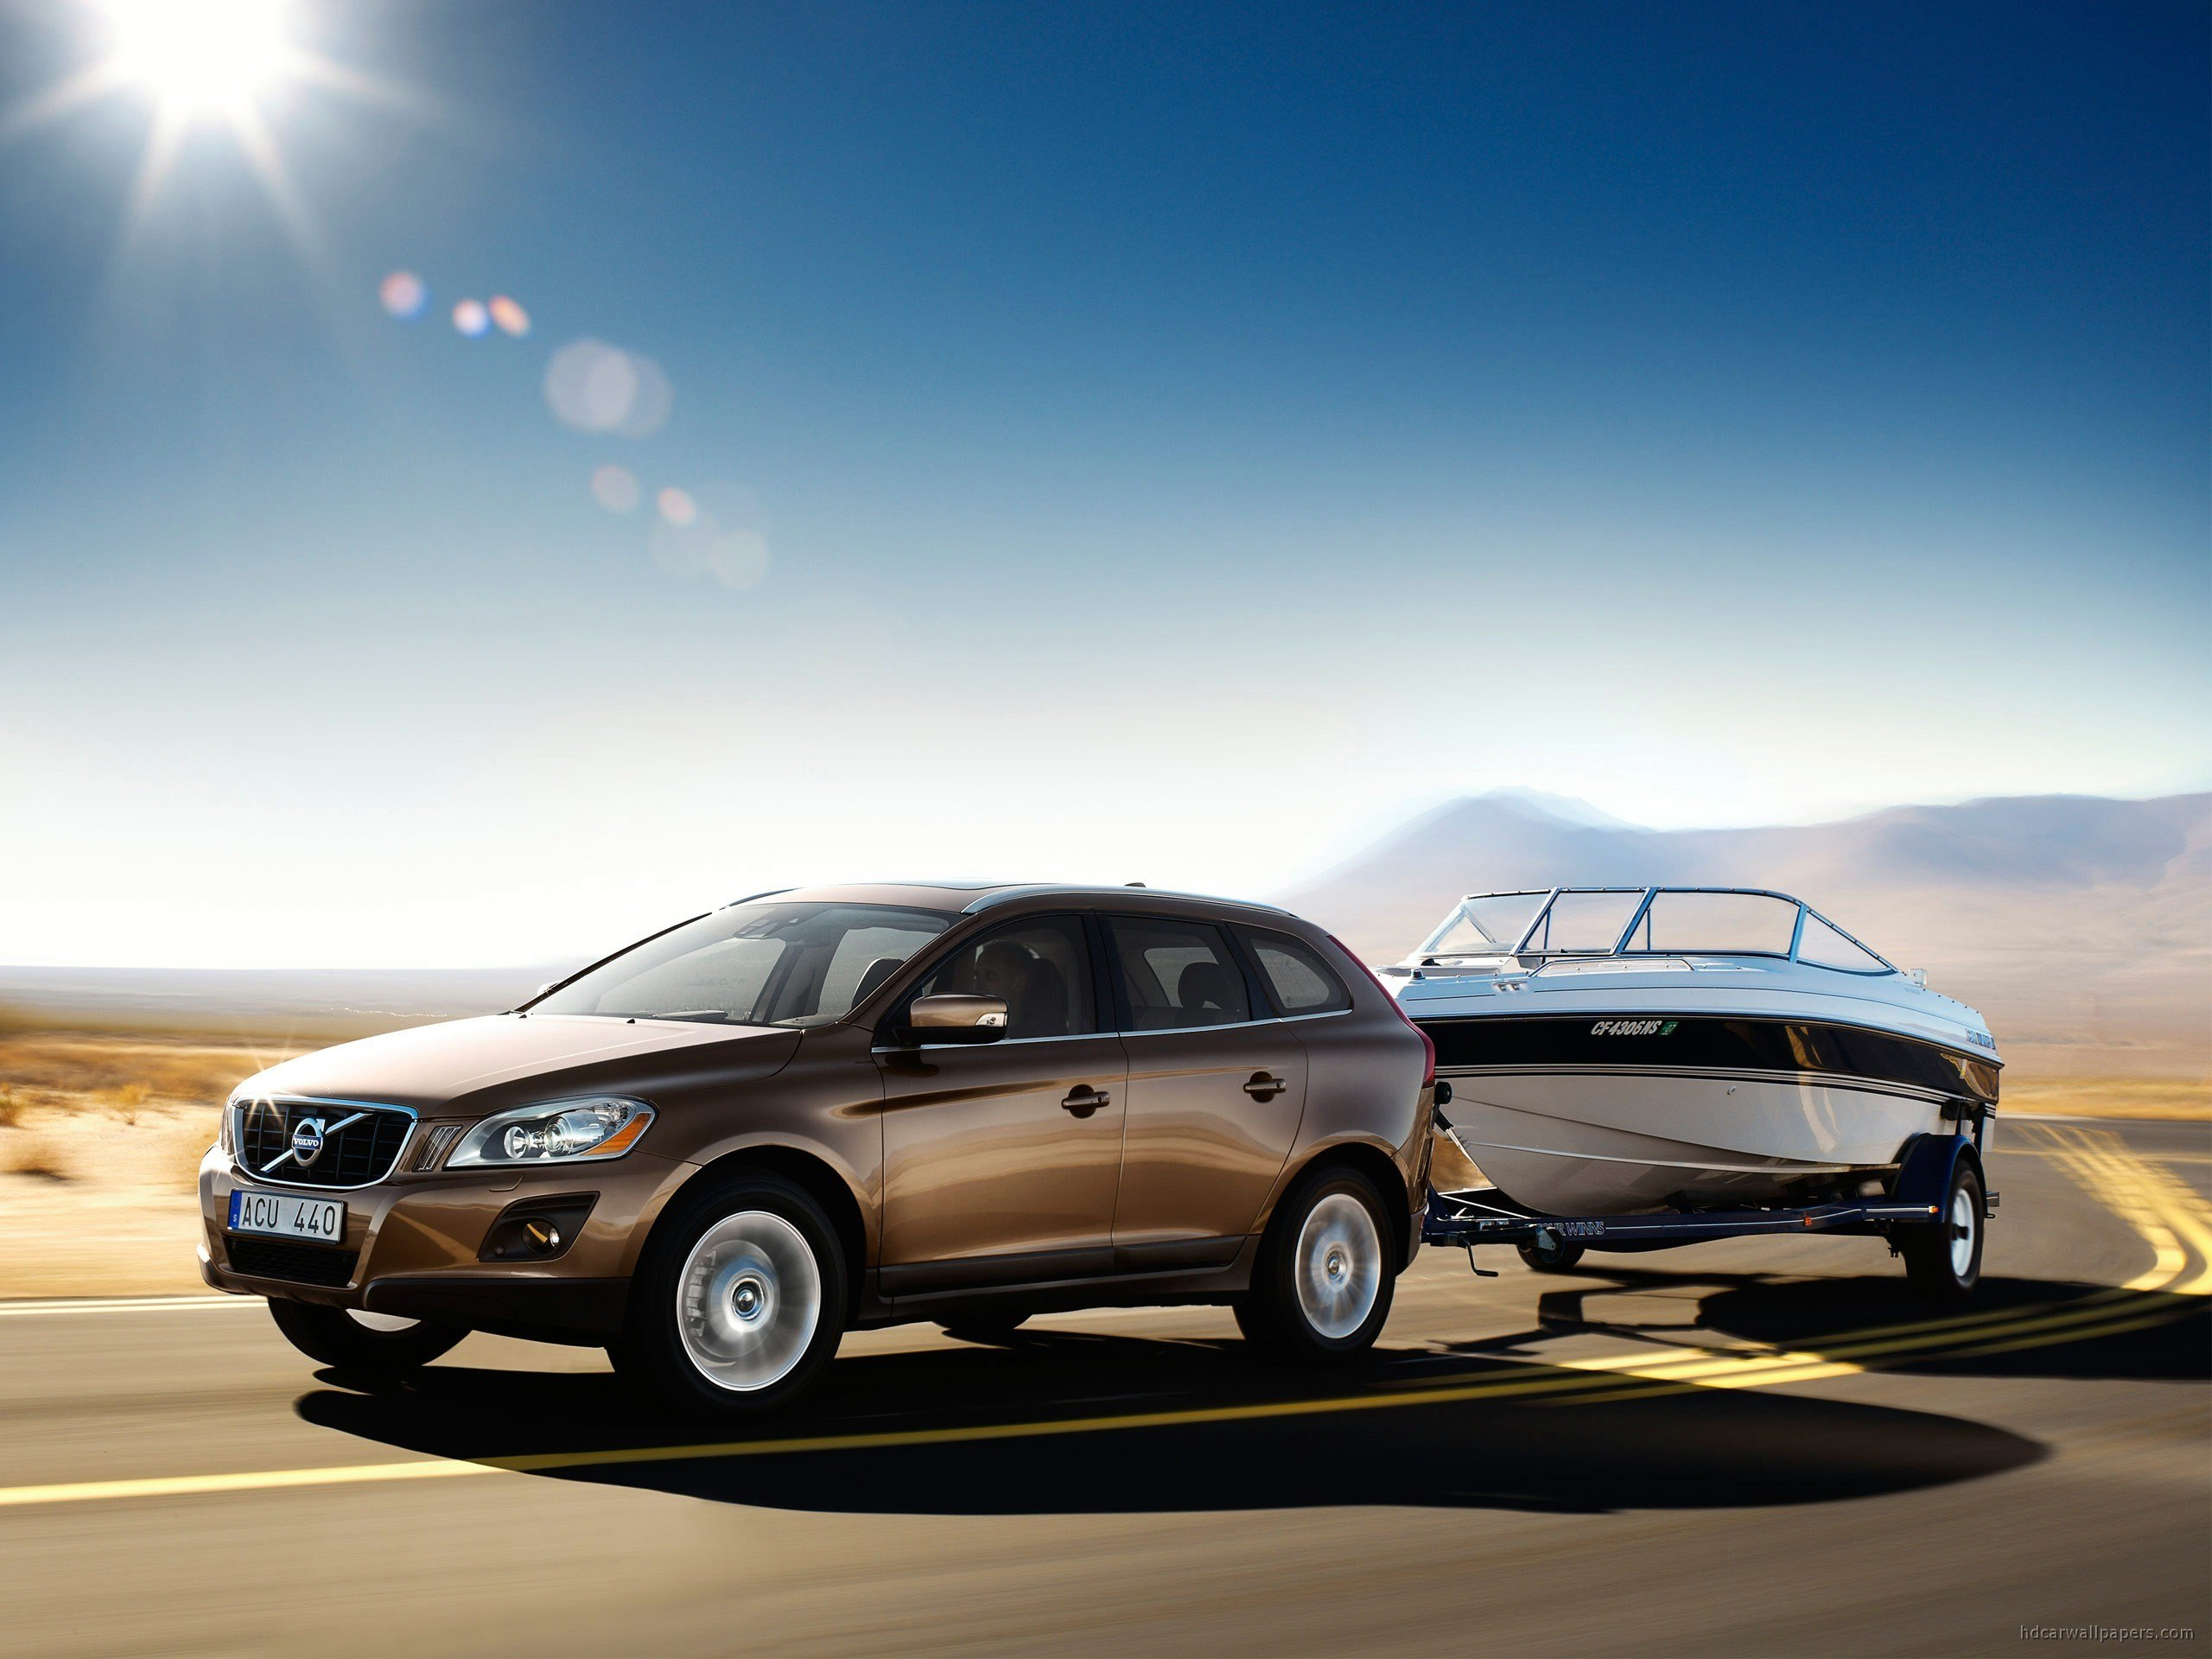 New Volvo Xc60 New Wallpaper Hd Car Wallpapers Id 1396 On This Month